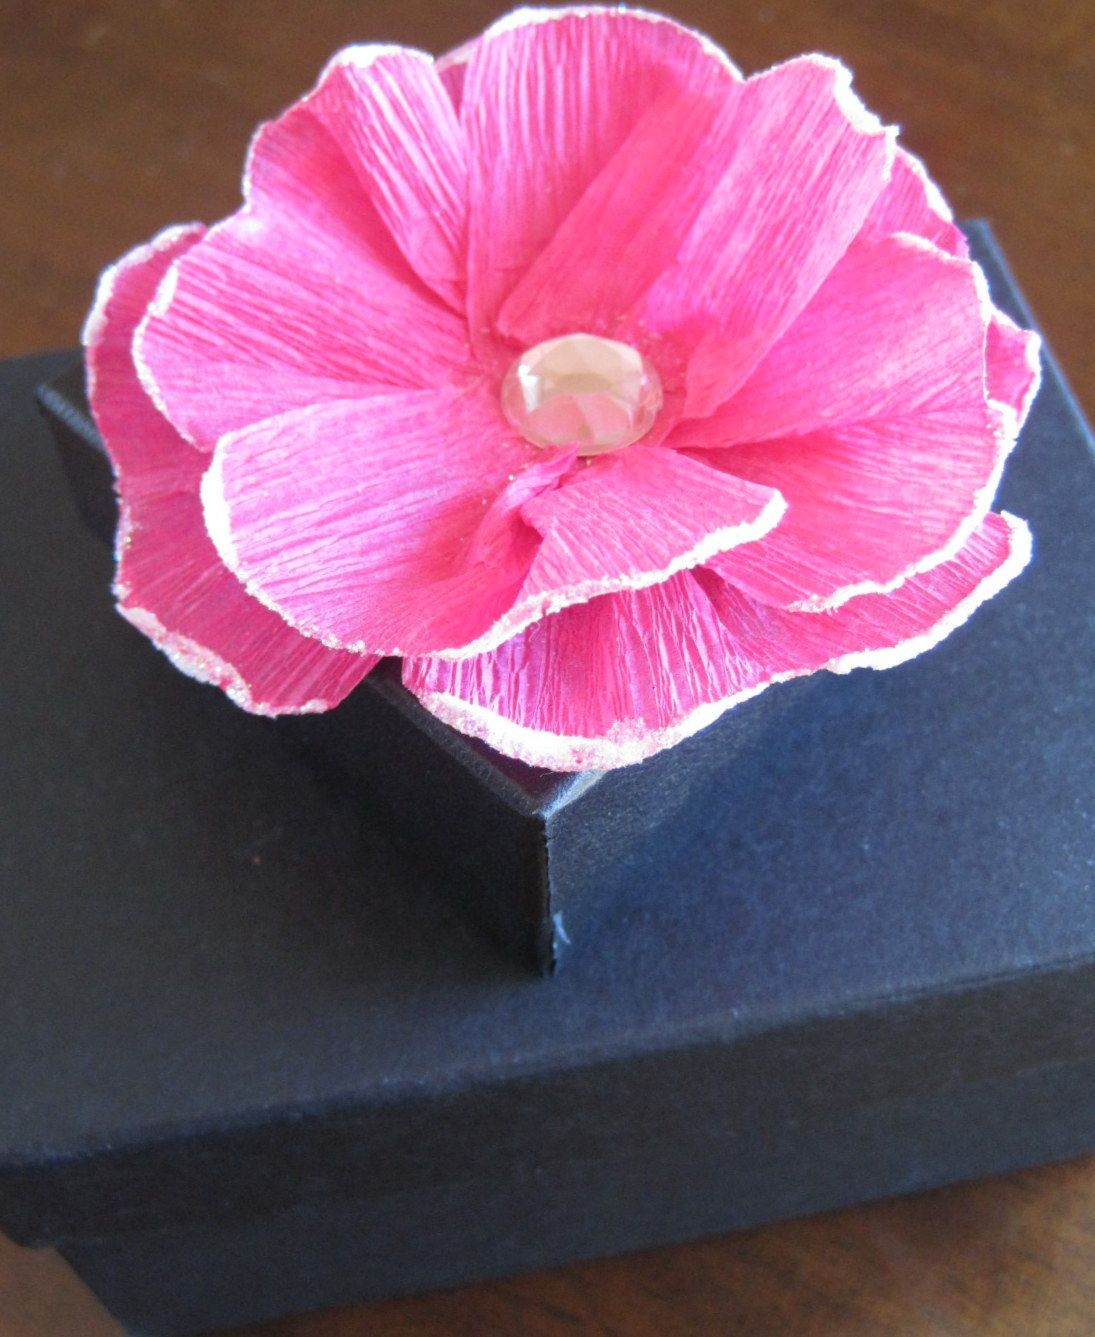 Day 23 crepe paper flower crepe paper flower and crafts crepe paper flower mightylinksfo